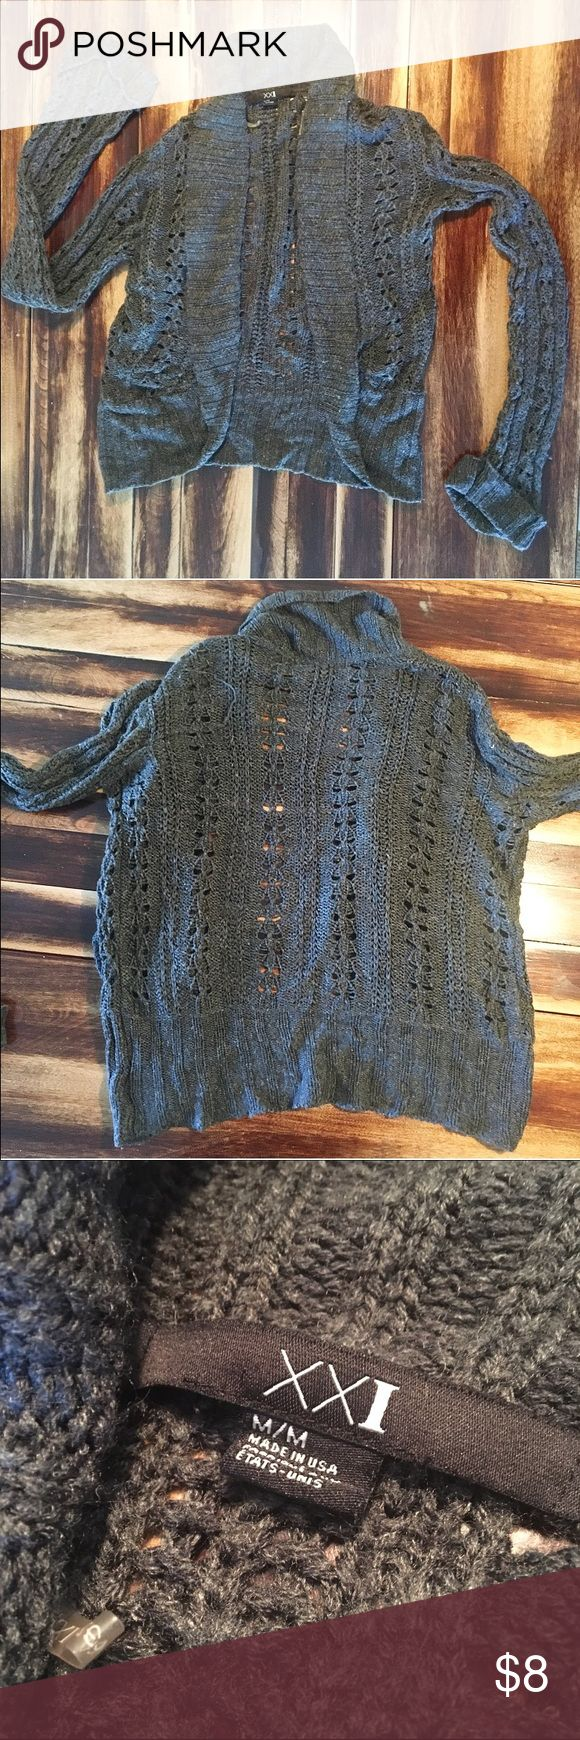 Knitted Shrug Lose knit. Folded sleeves 3 inches. Round bottom Forever 21 Sweaters Shrugs & Ponchos